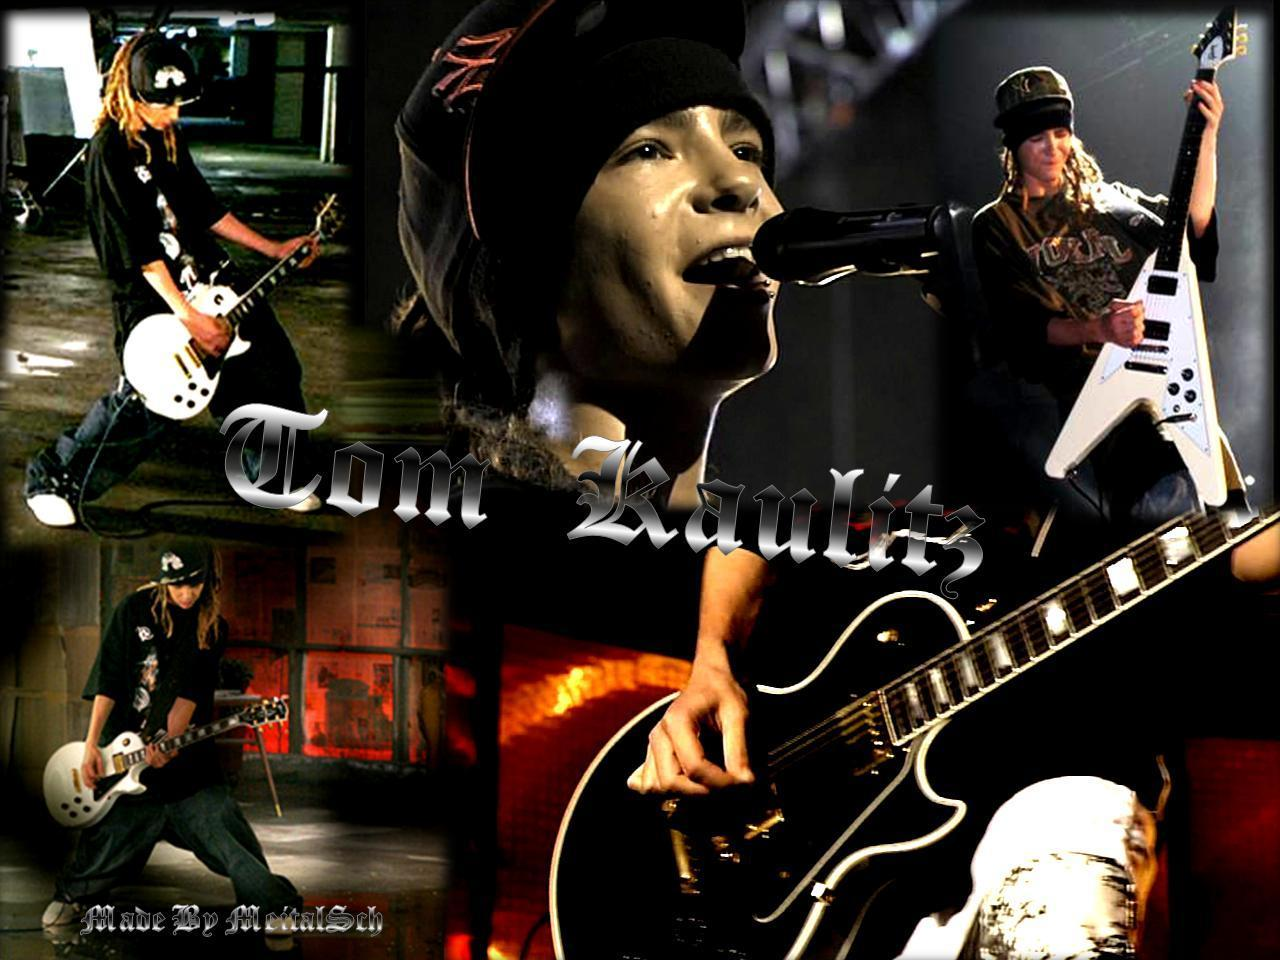 Tom Wallpaper - Tokio Hotel 1280x960 1024x768 800x600